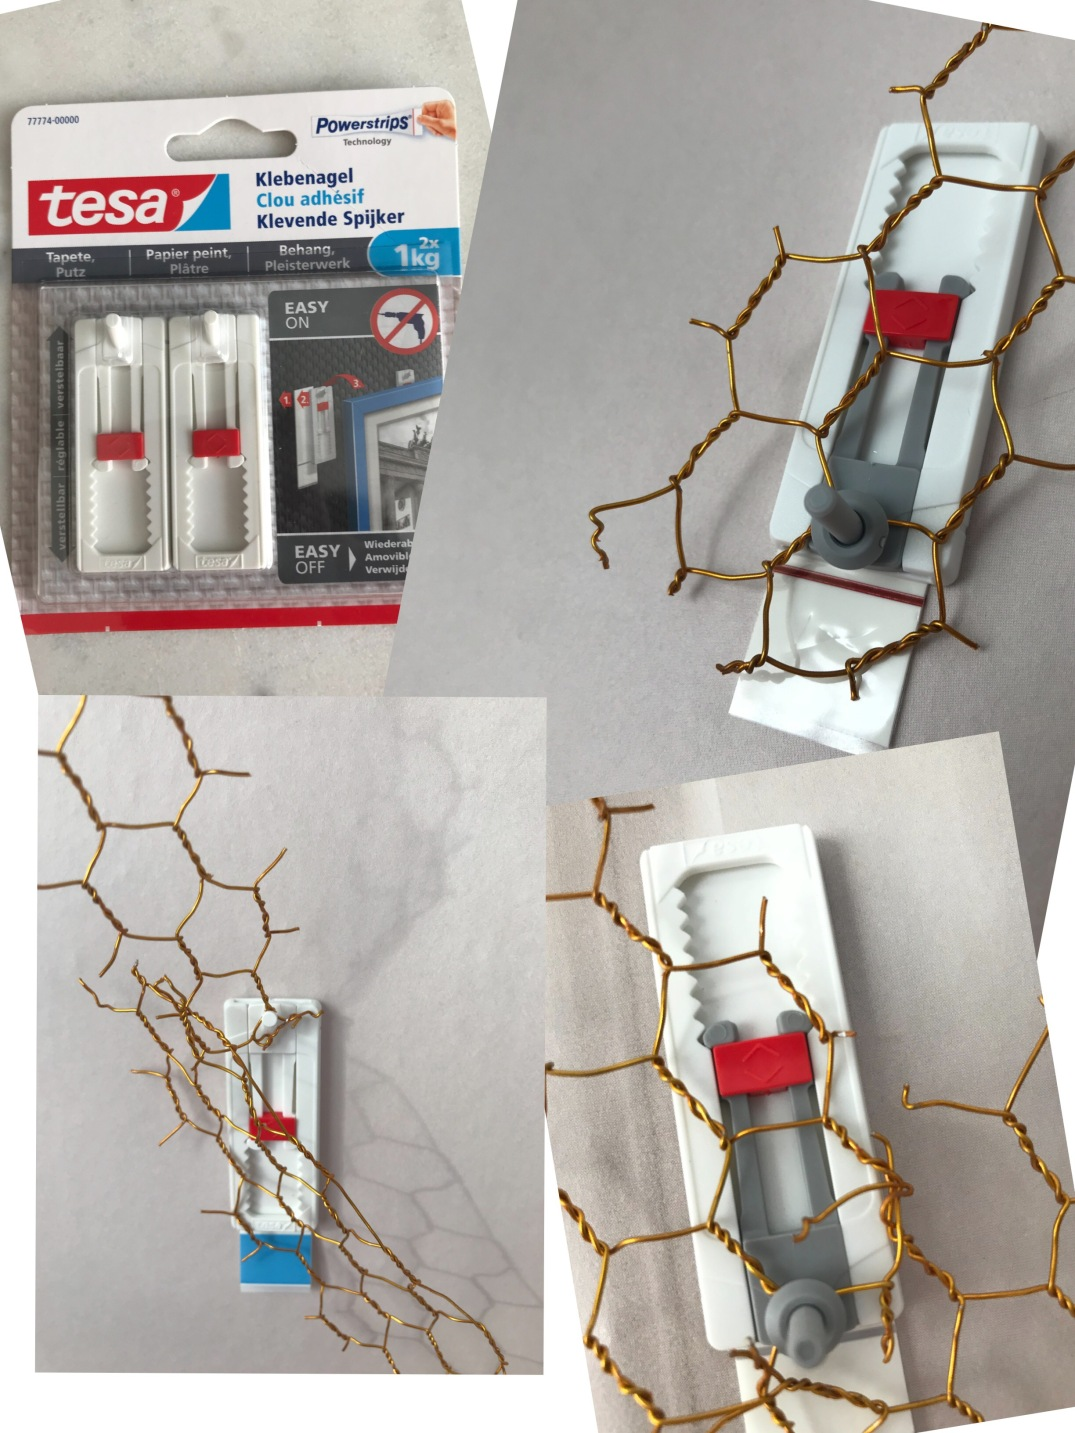 installing an XXL wreath with TESA POWERSTRIPS